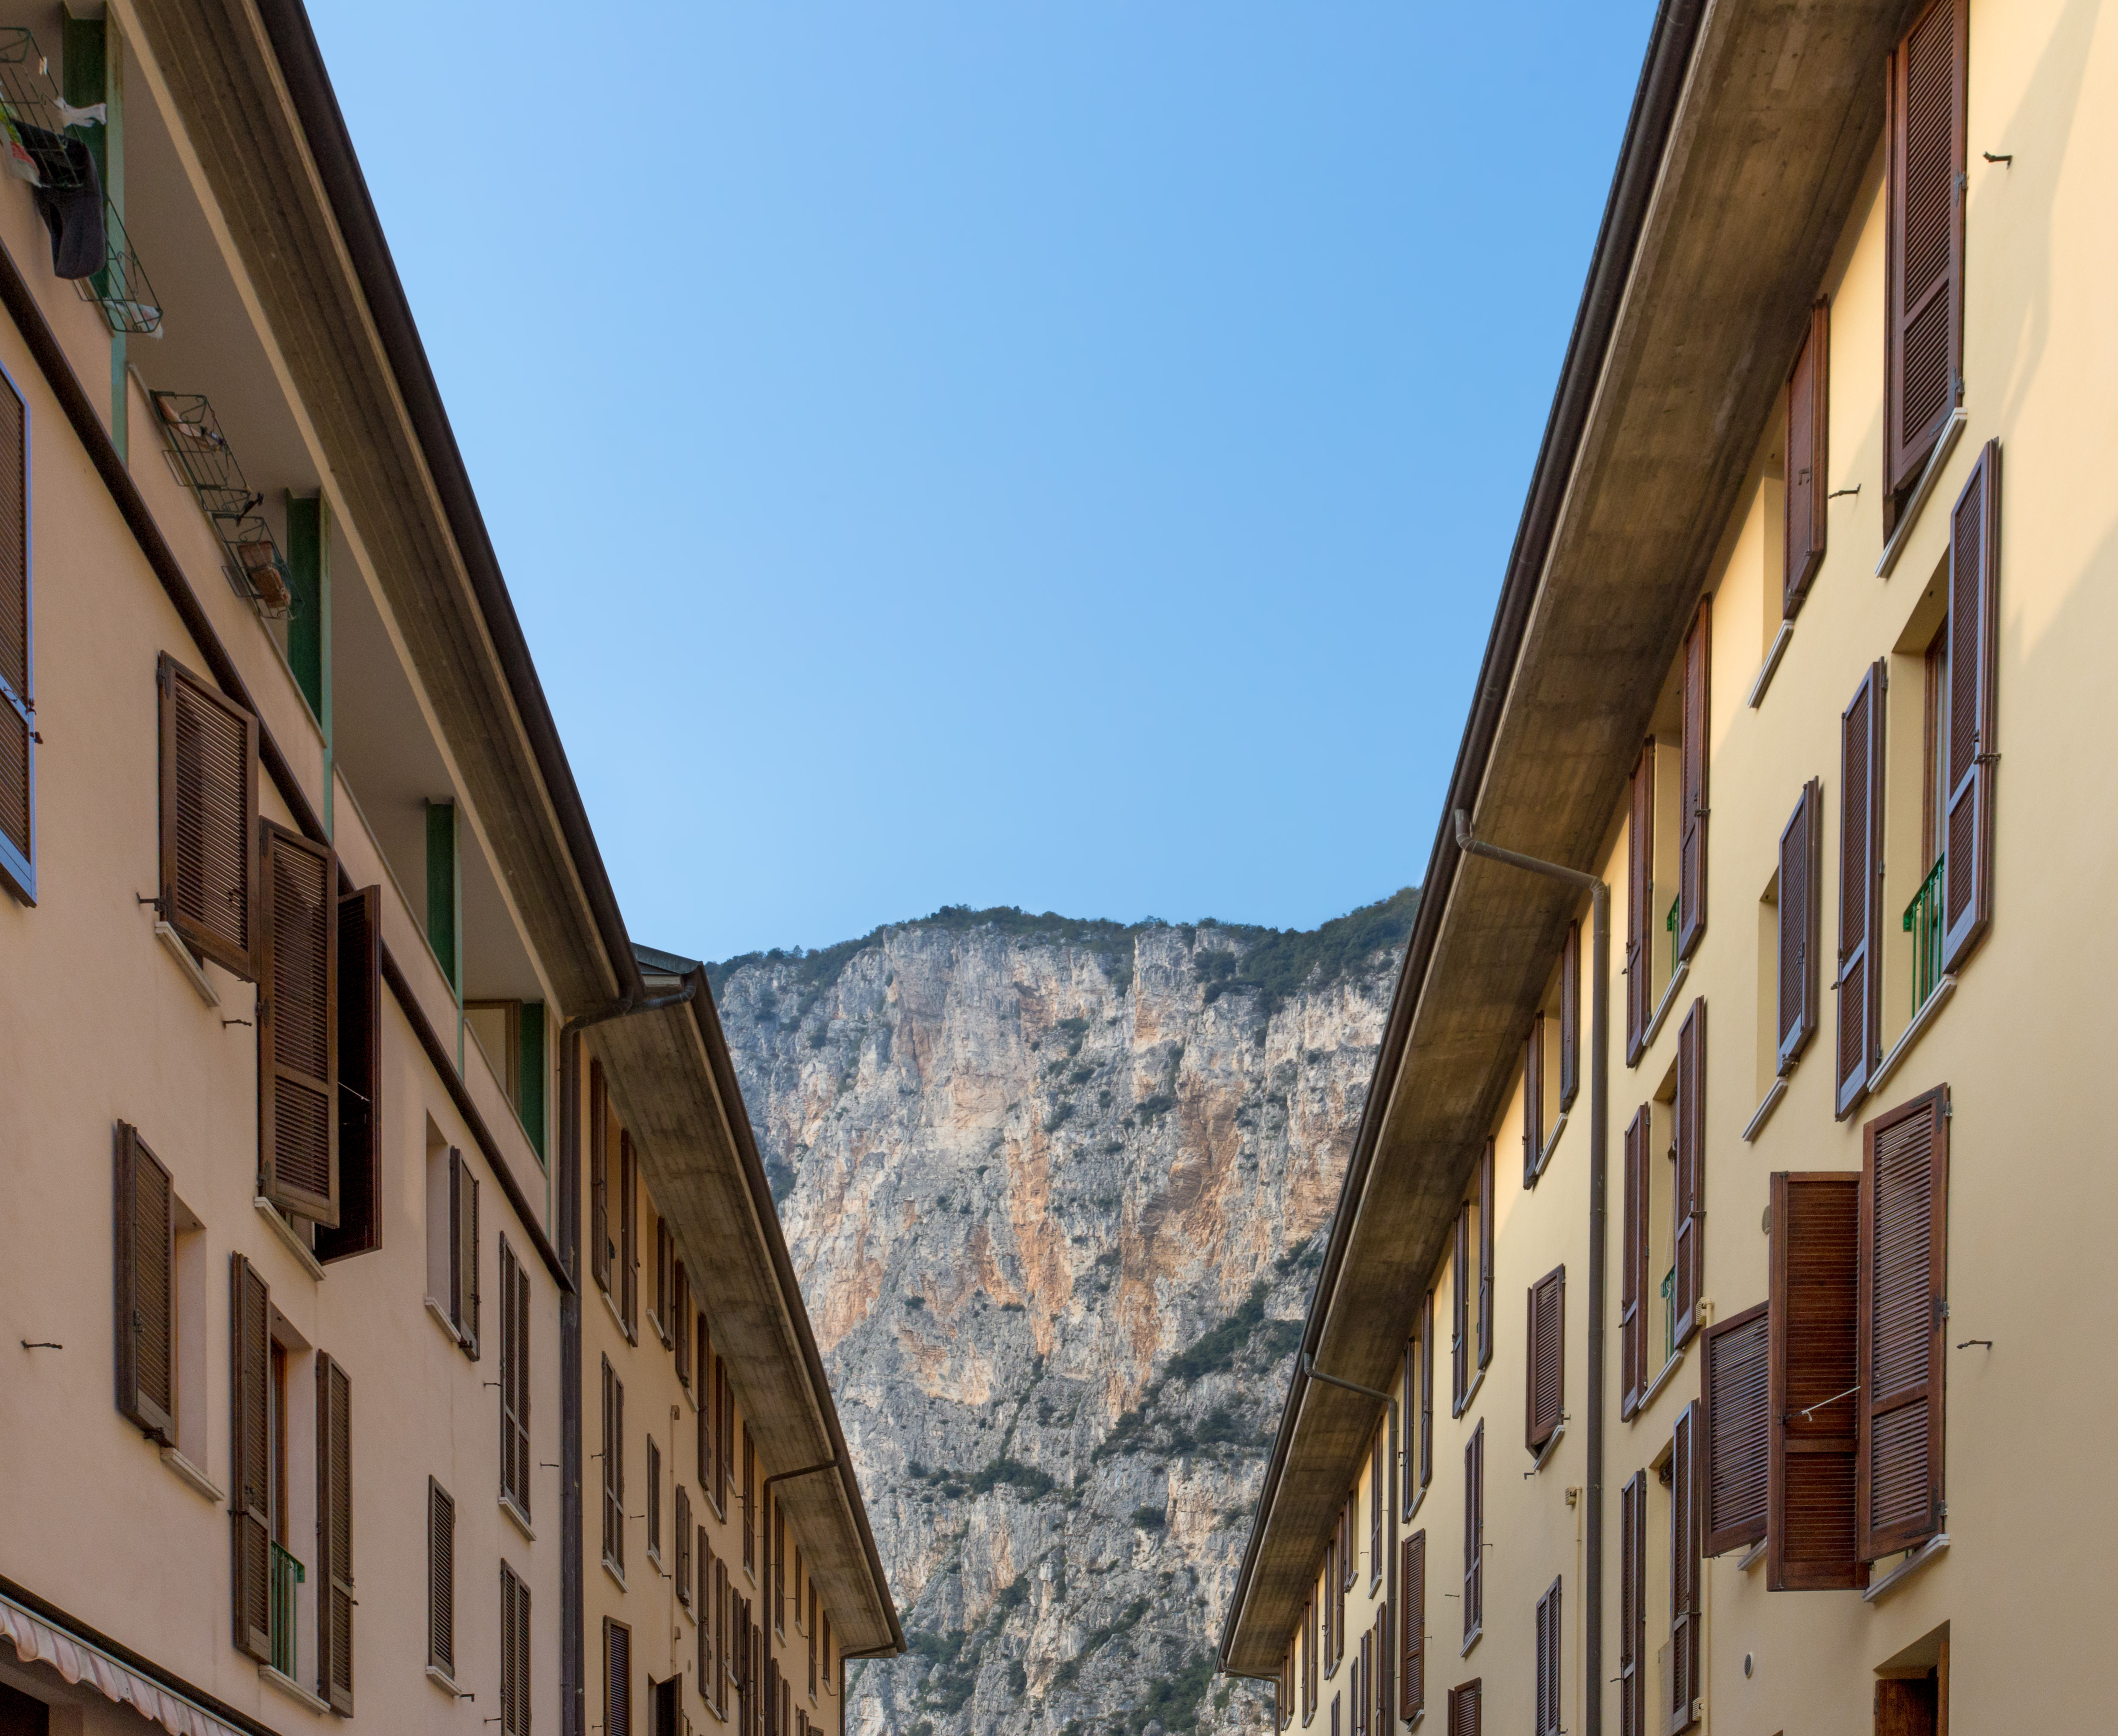 . File Campione del Garda houses with cliffs jpg   Wikimedia Commons